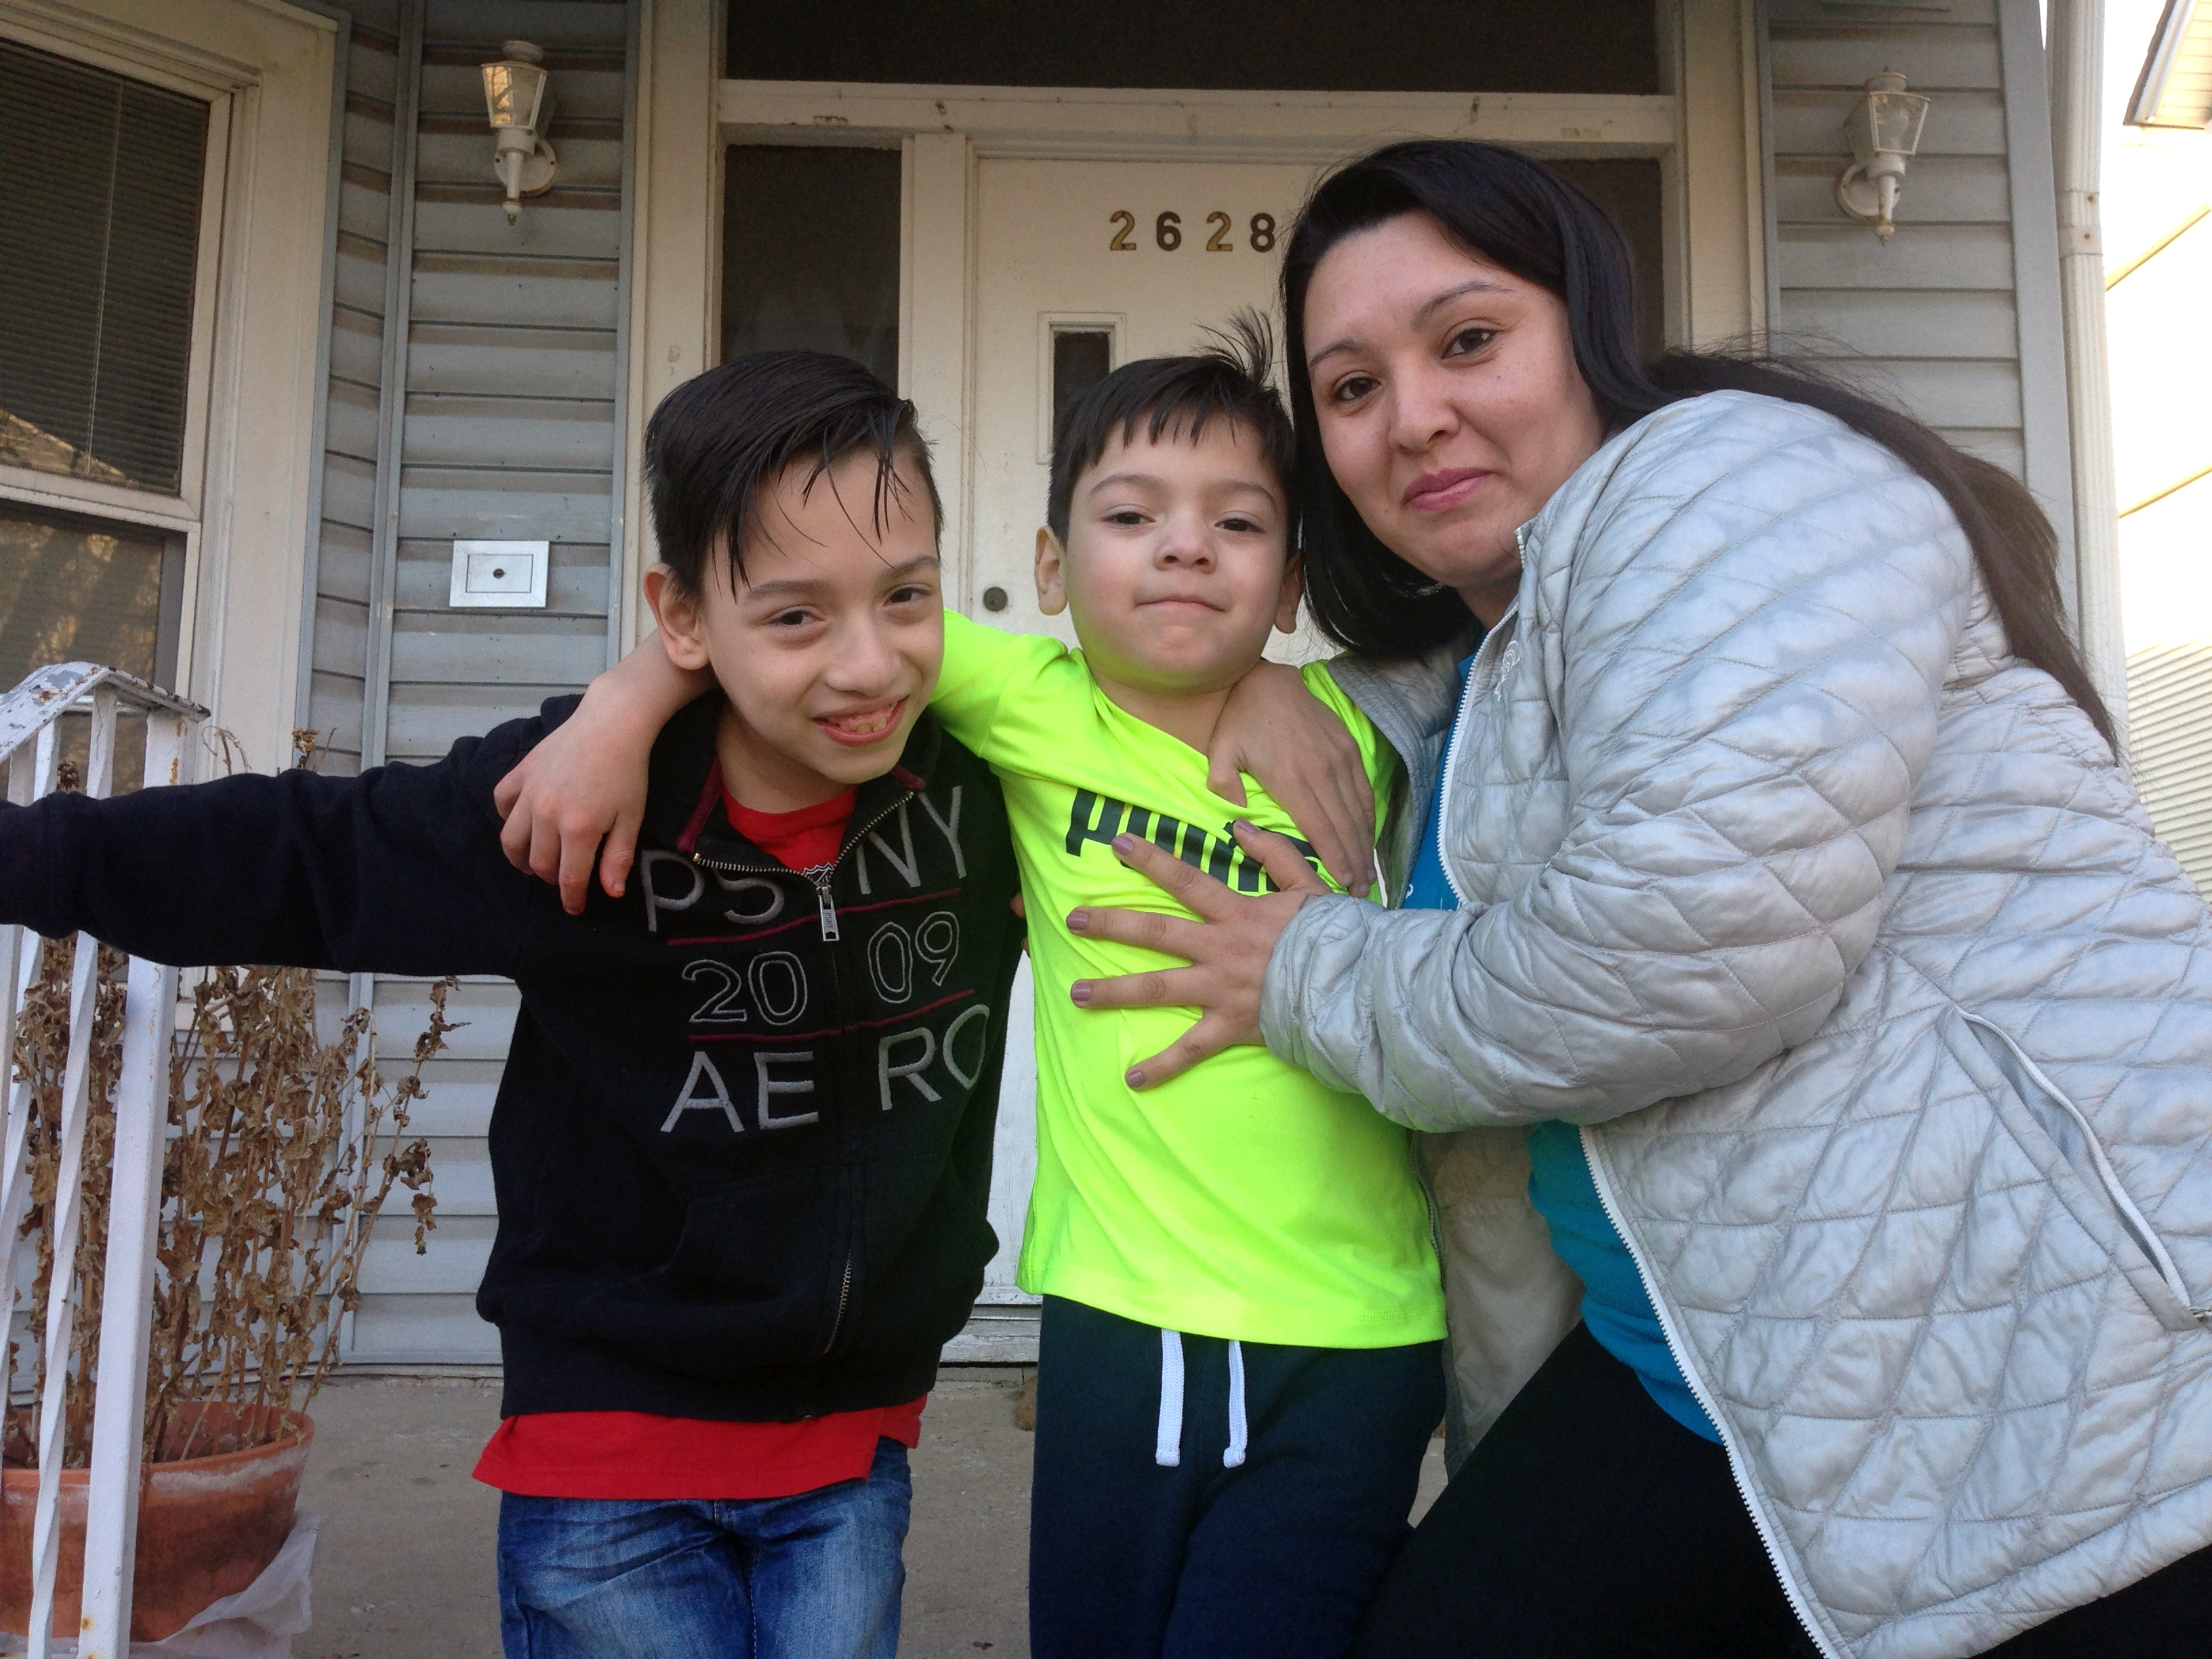 Gabriela Baraja, right, and her sons Melvin Garcia, left, and Antonio Garcia pose for a photo at their home in Chicago on Wednesday, Feb. 22, 2017. (Don Babwin/Associated Press)